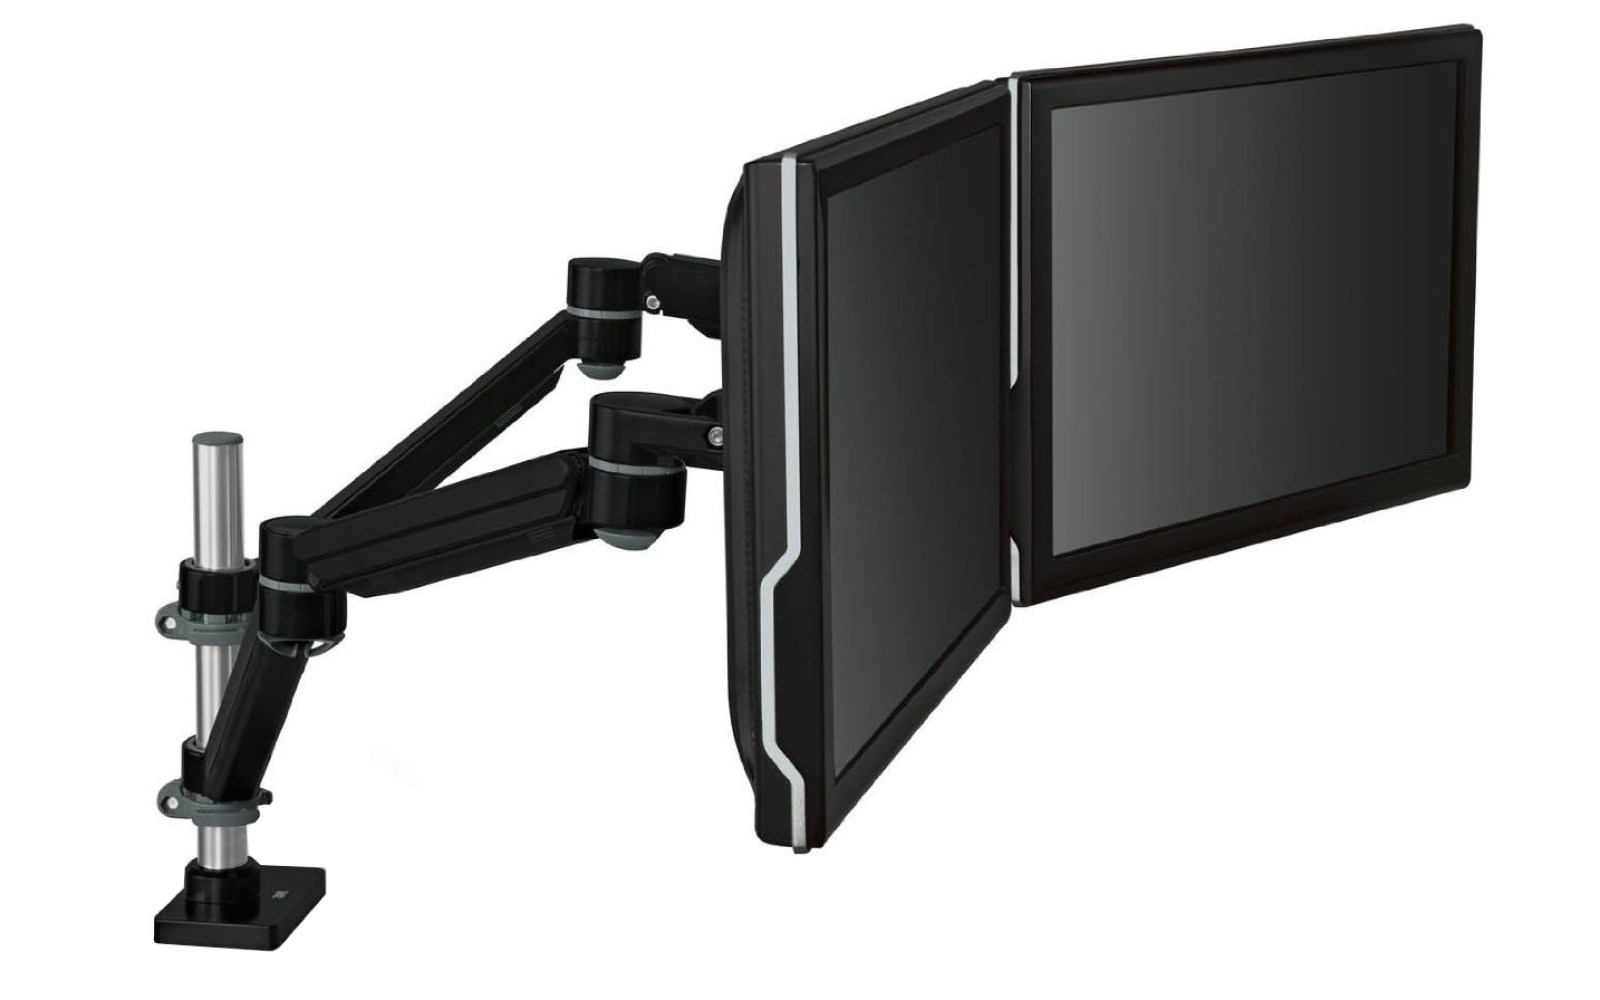 Add some comfort to your workspace w/ today's 3M sale at Amazon: dual monitor mount $184, much more